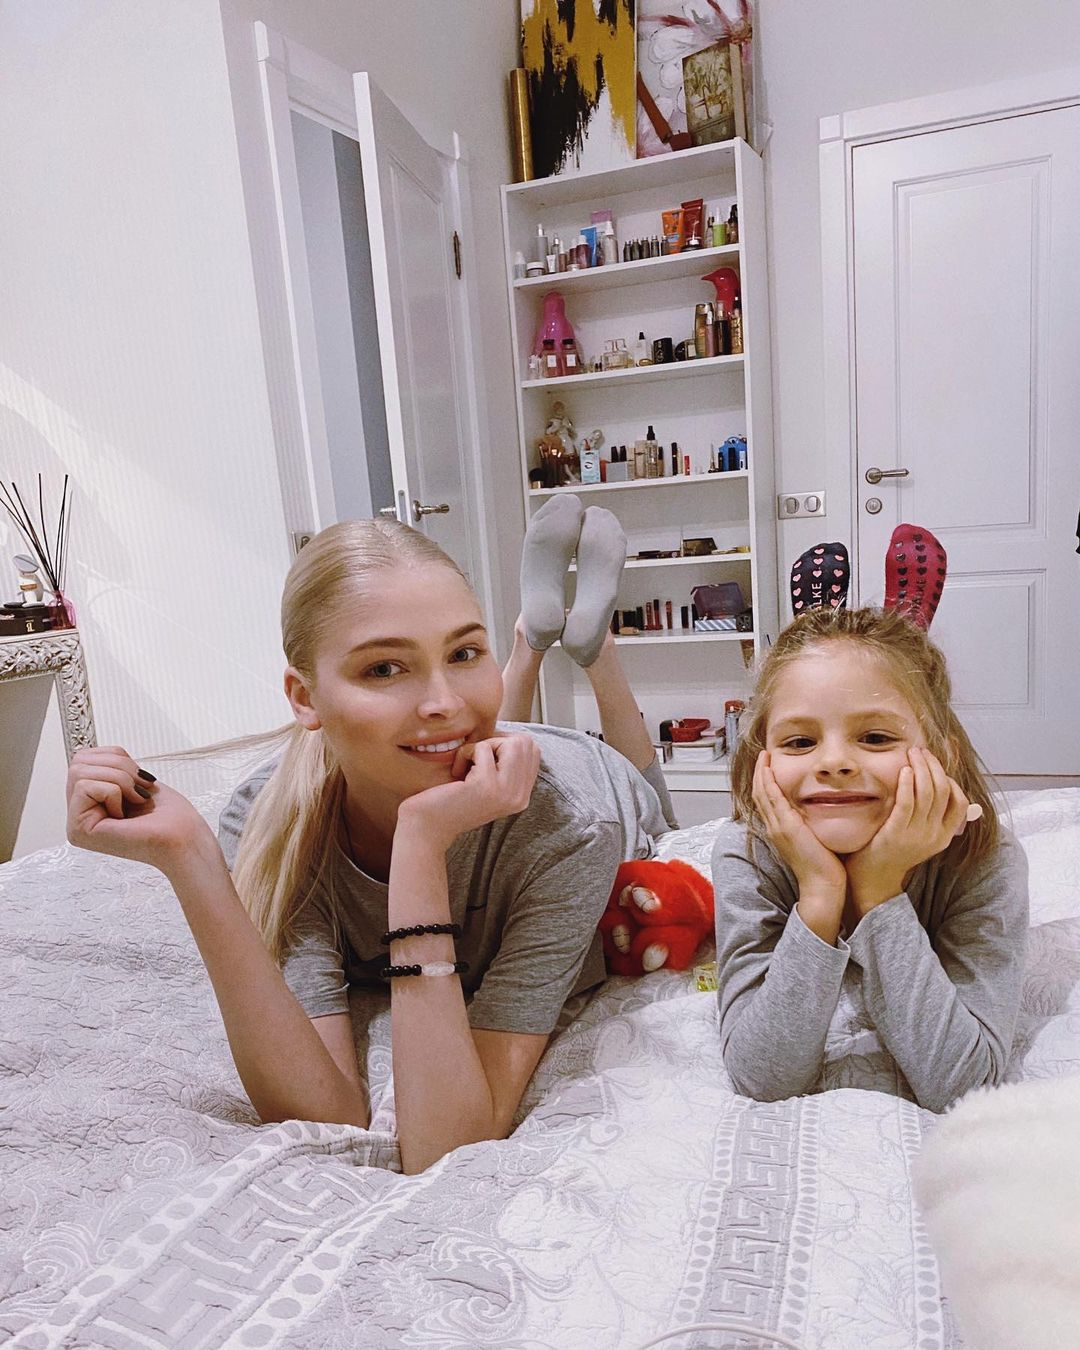 Alena Shishkova answered ambiguously why she does not take her daughter on vacation with her